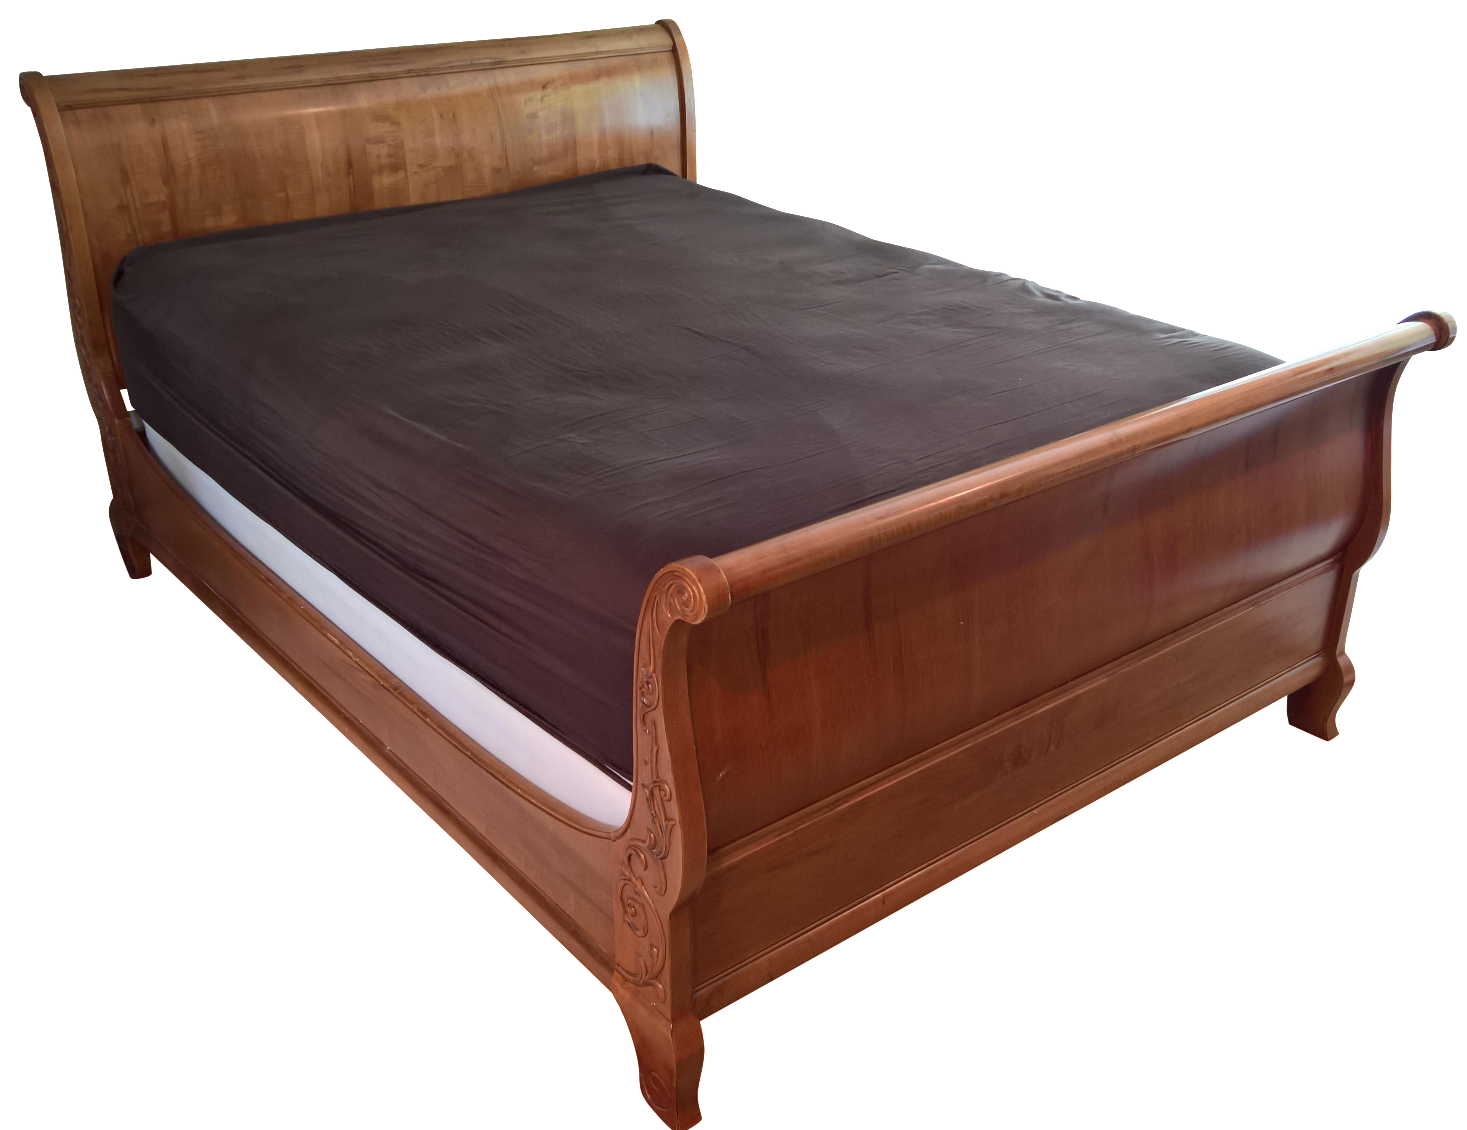 Ethan allen legacy queen sleigh bed chairish - Ethan allen queen beds ...